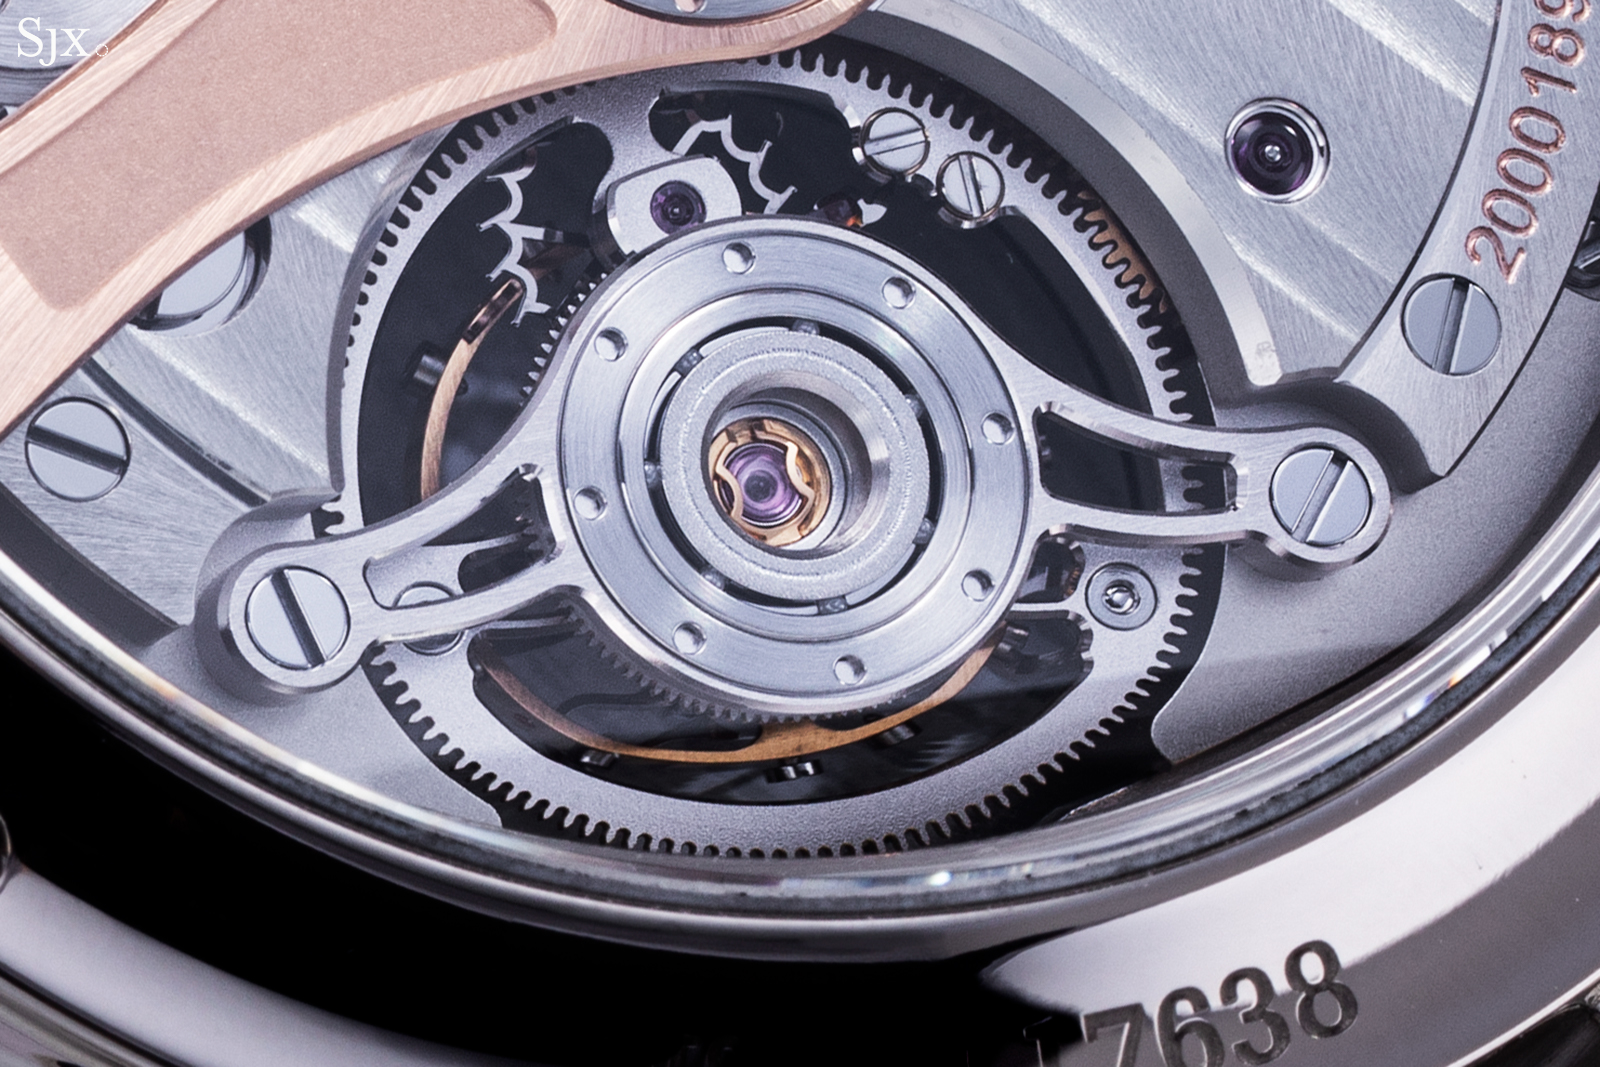 H. Moser & Cie Endeavour Tourbillon Cosmic Green back close up